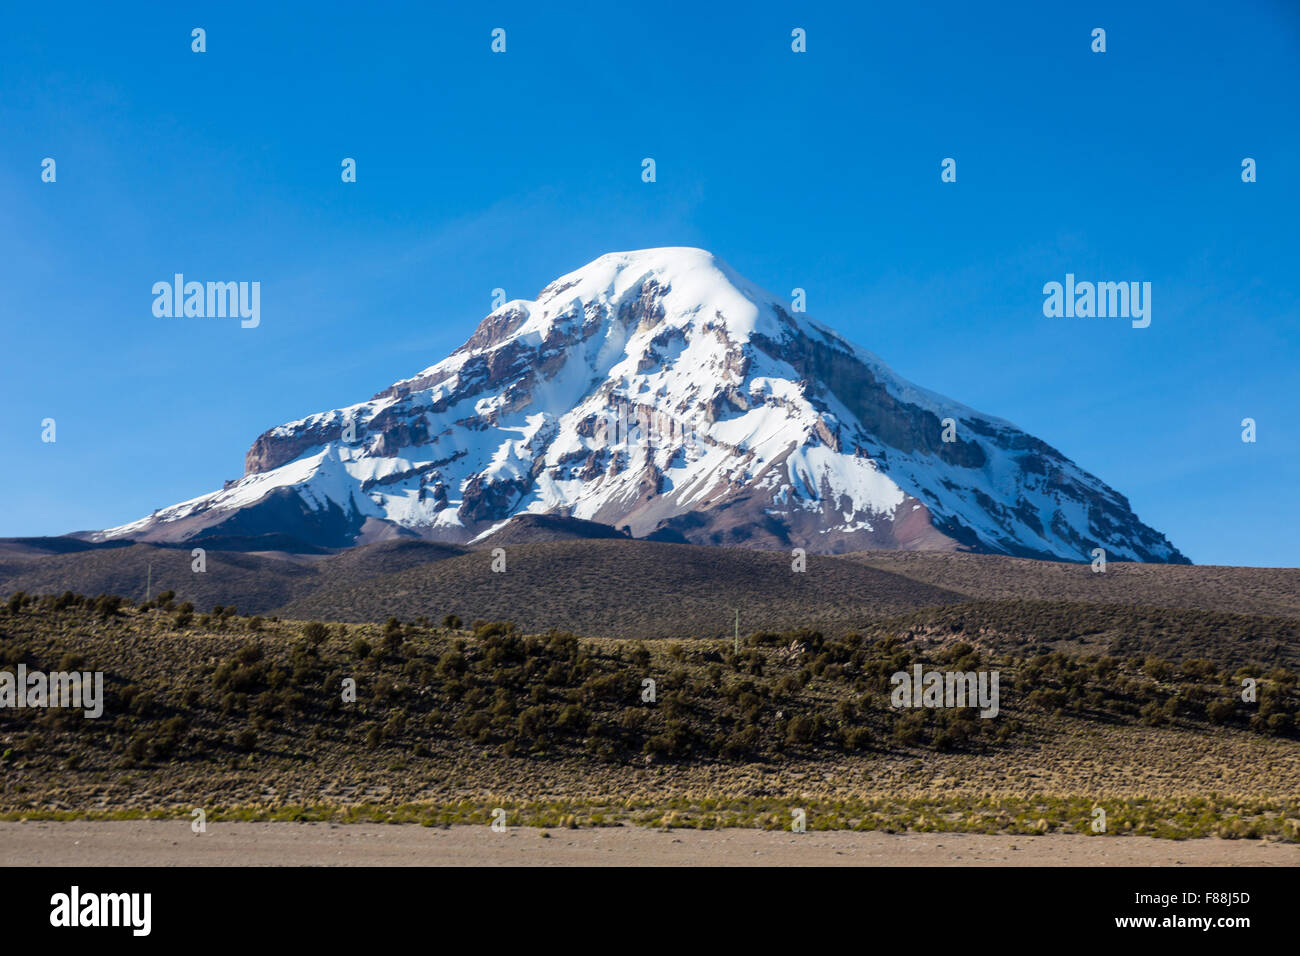 Sajama volcano in the Natural Park of Sajama. Bolivia - Stock Image